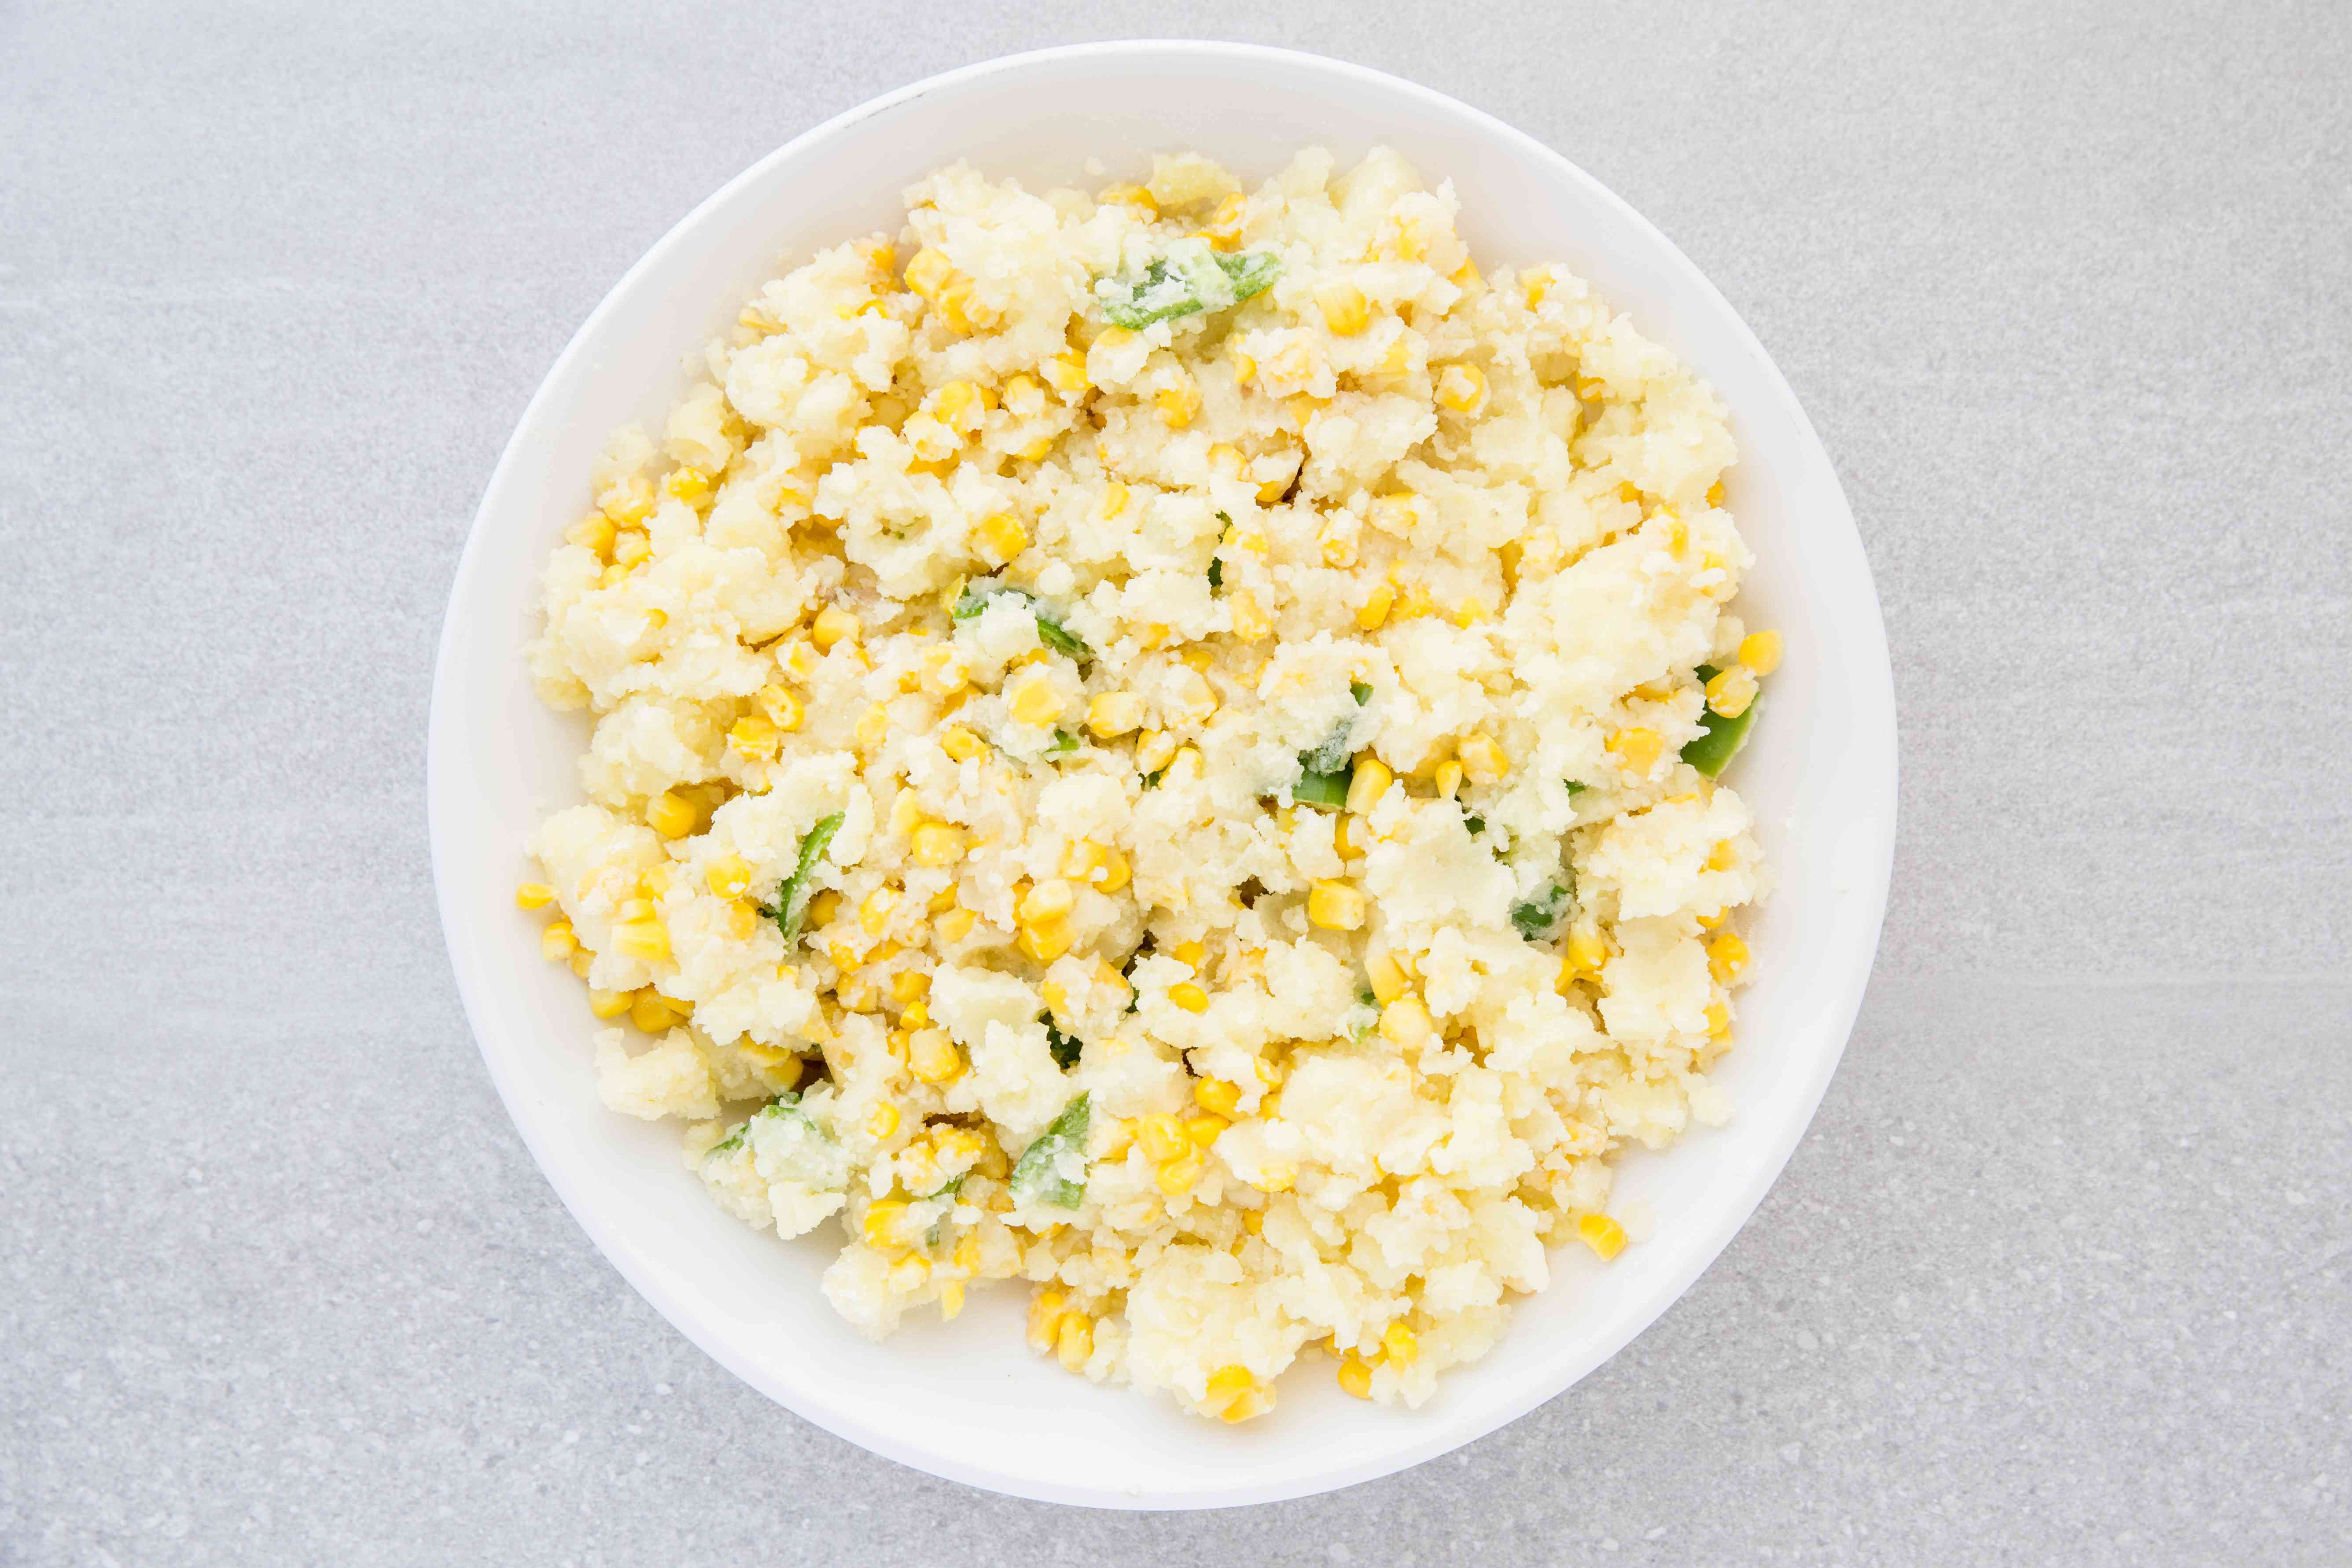 Combine corn kernels, potatoes, flour, melted butter, and chopped green bell pepper in a bowl